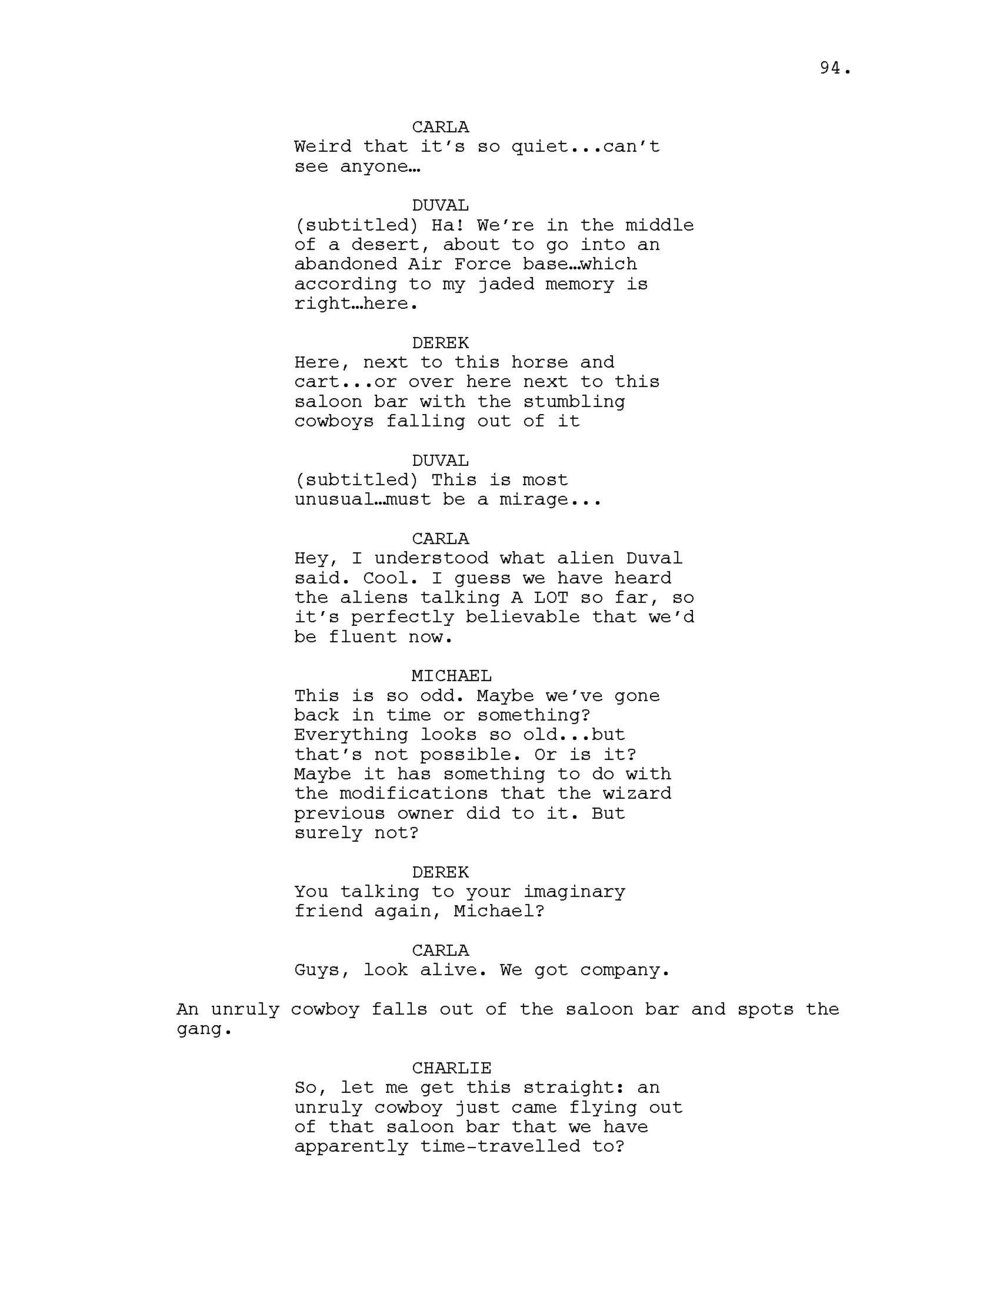 INVISIBLE WORLD SCRIPT_Page_095.jpg